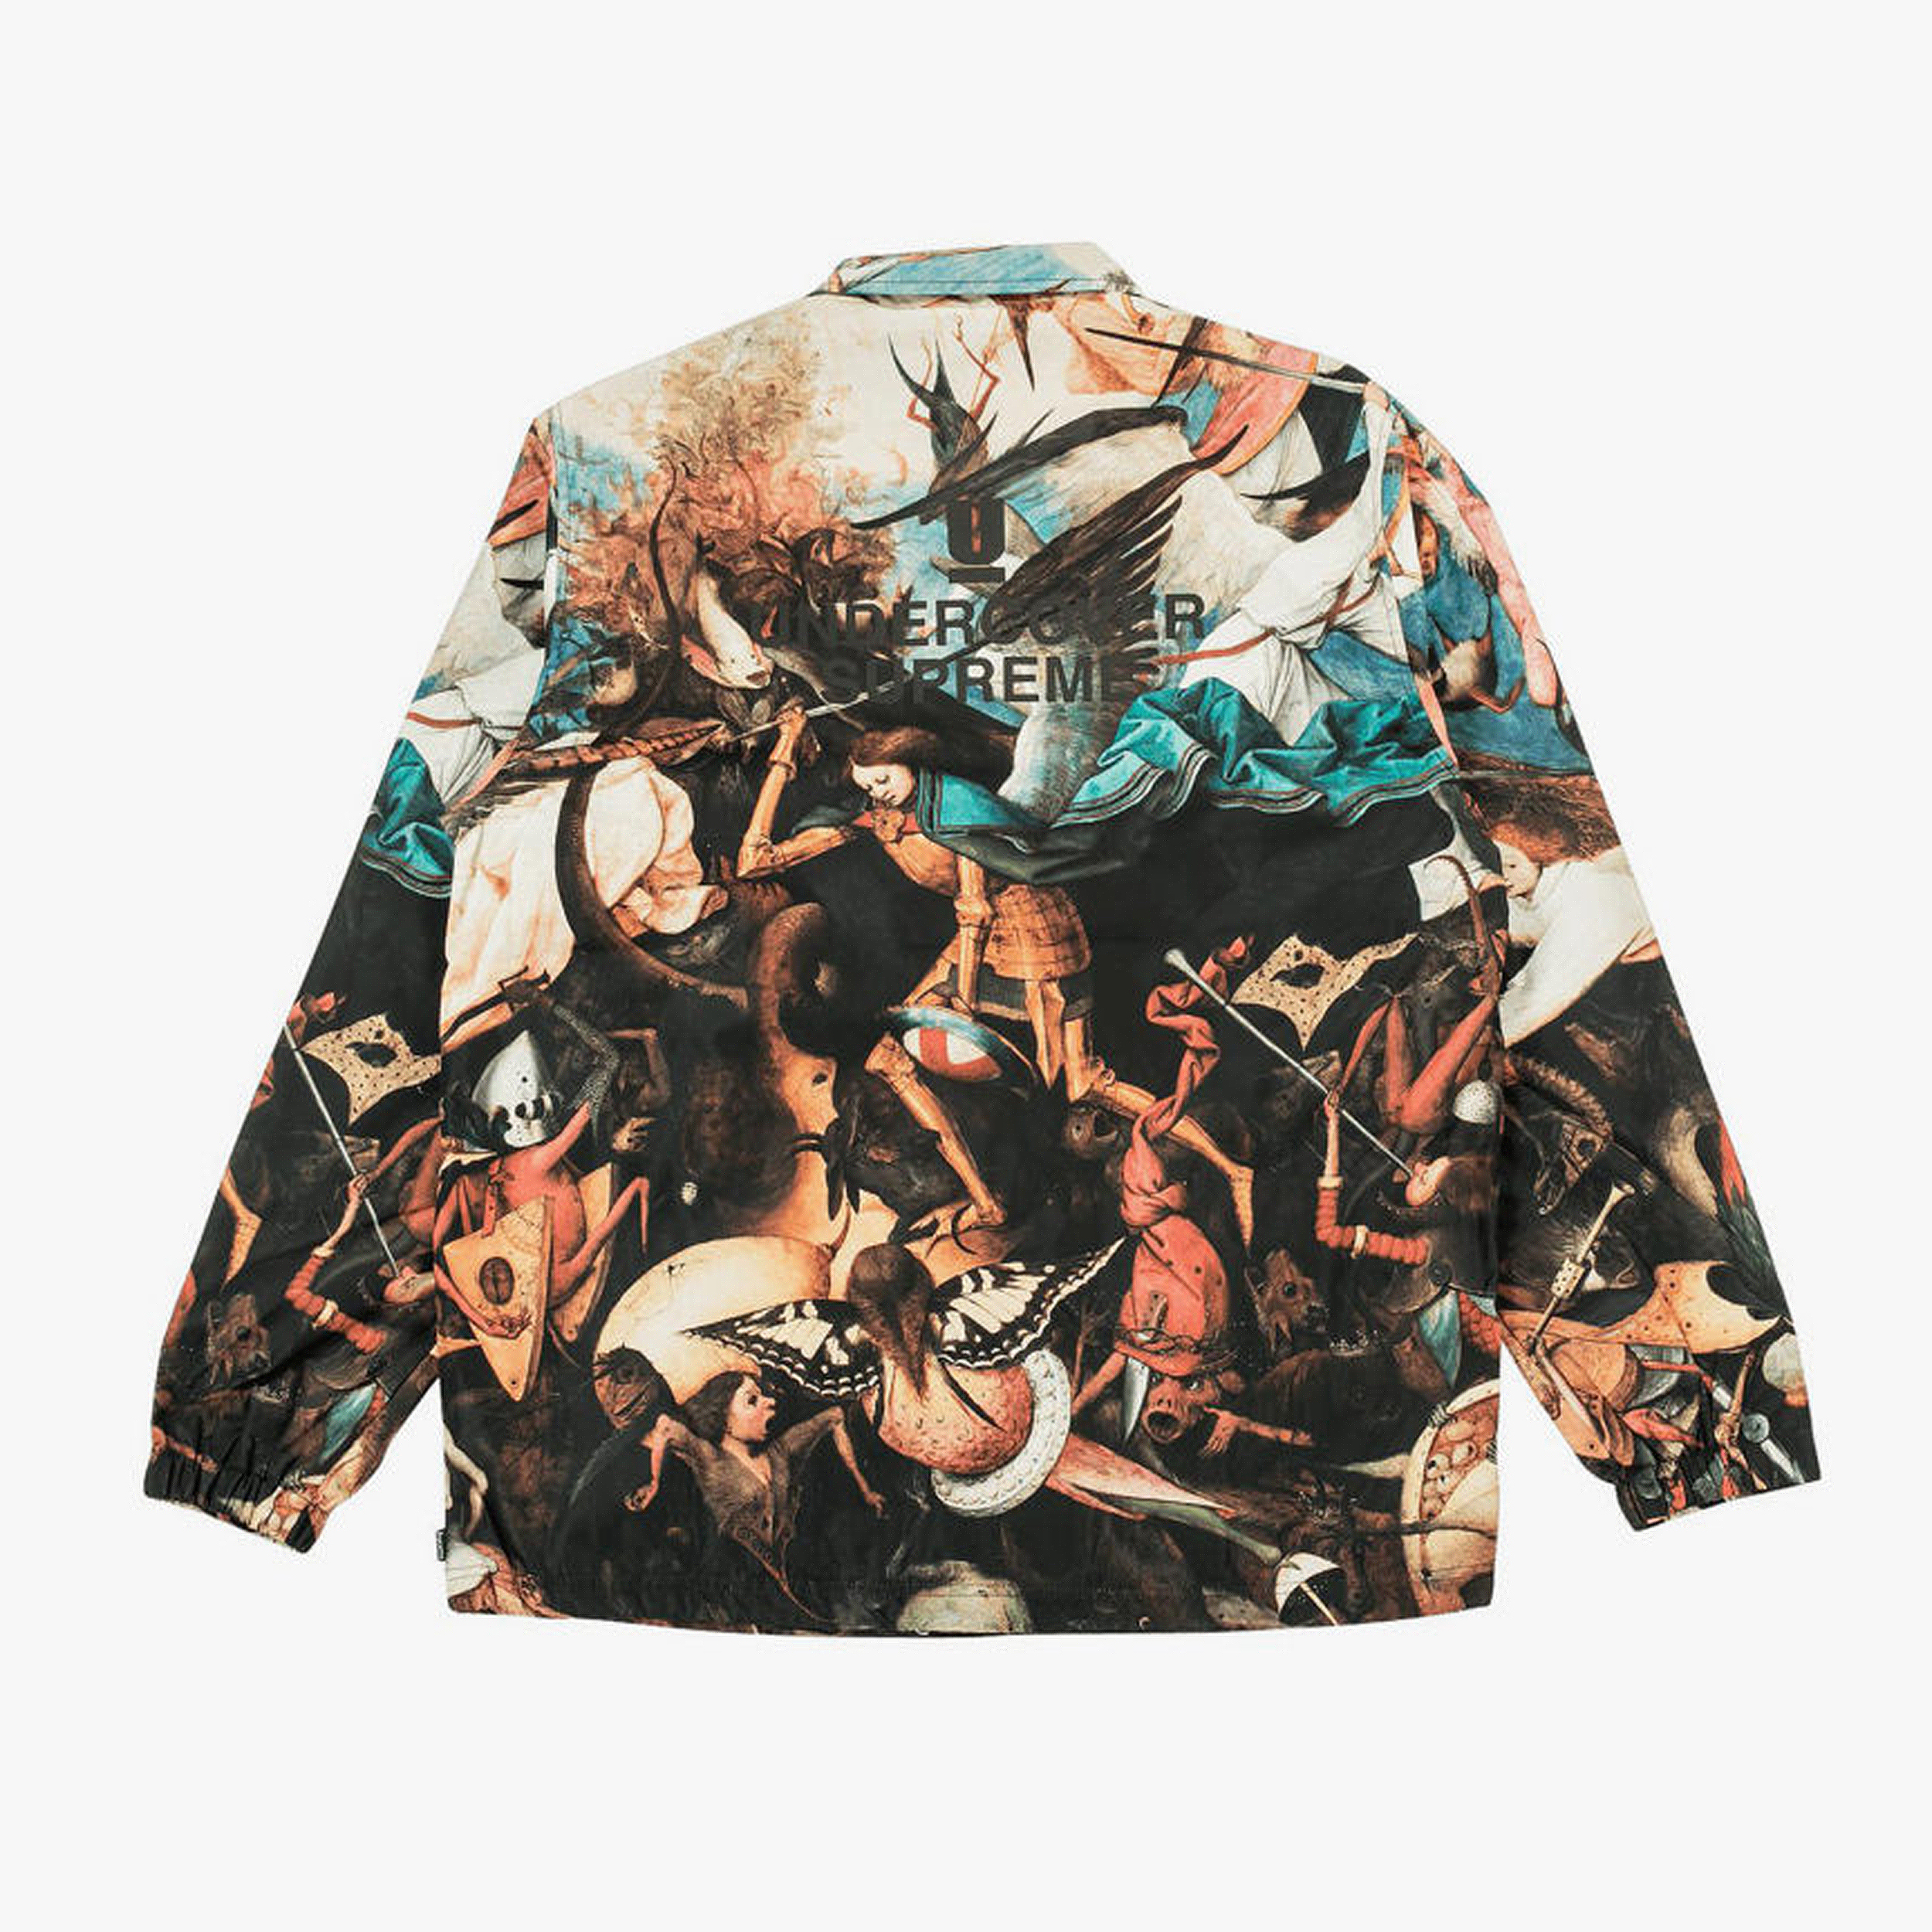 Supreme x Undercover Coach Jacket PlugMePlease